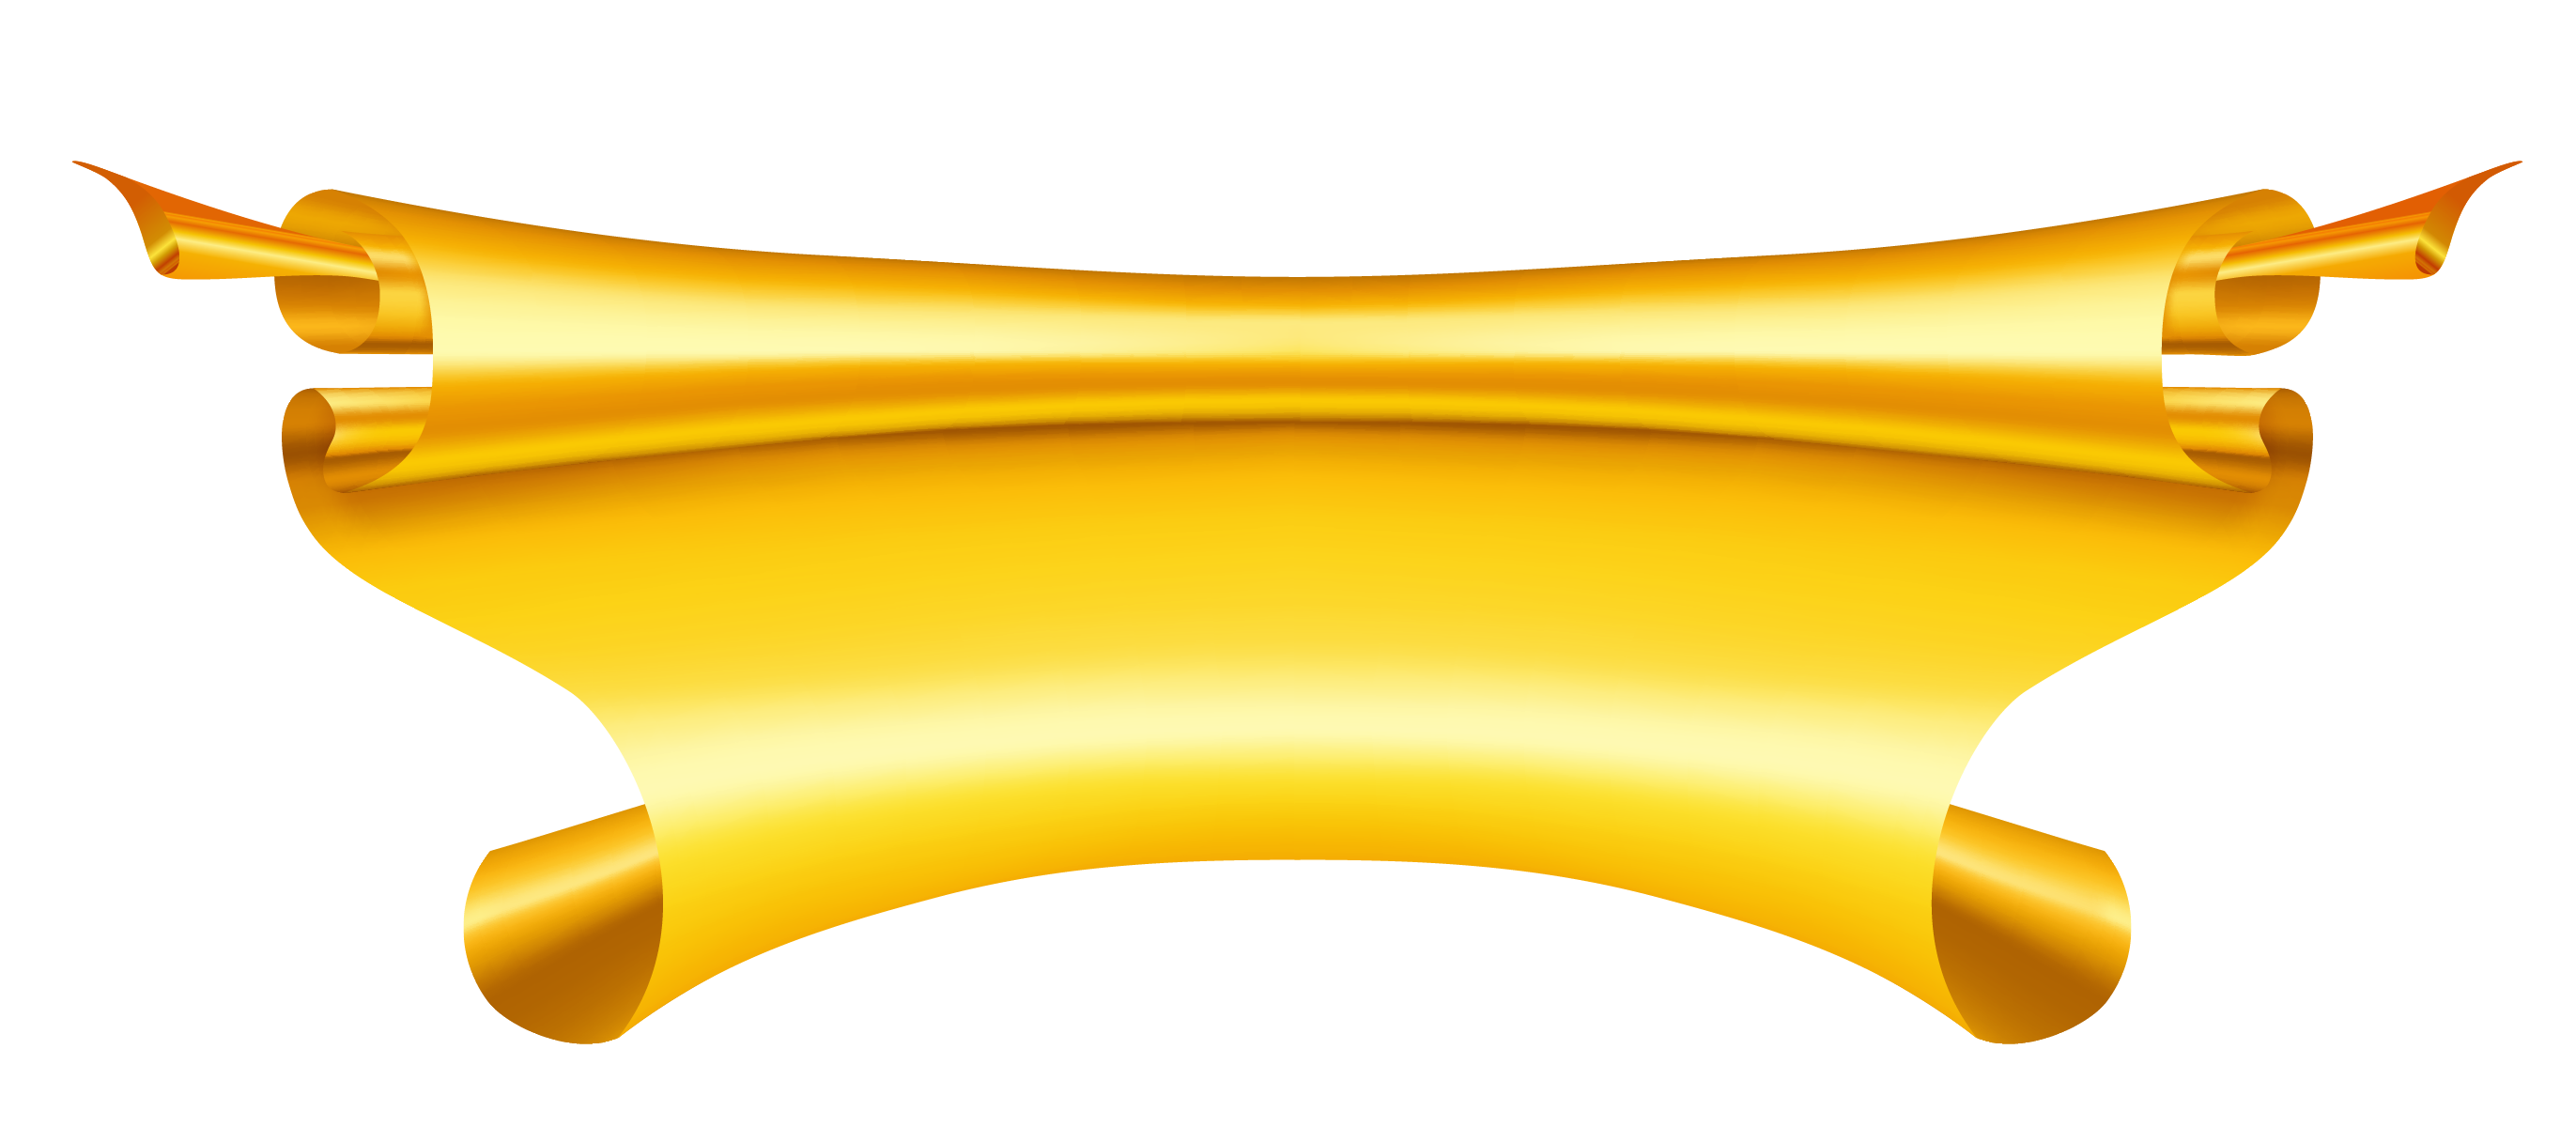 Ribbon banner png. Yellow golden clipart places